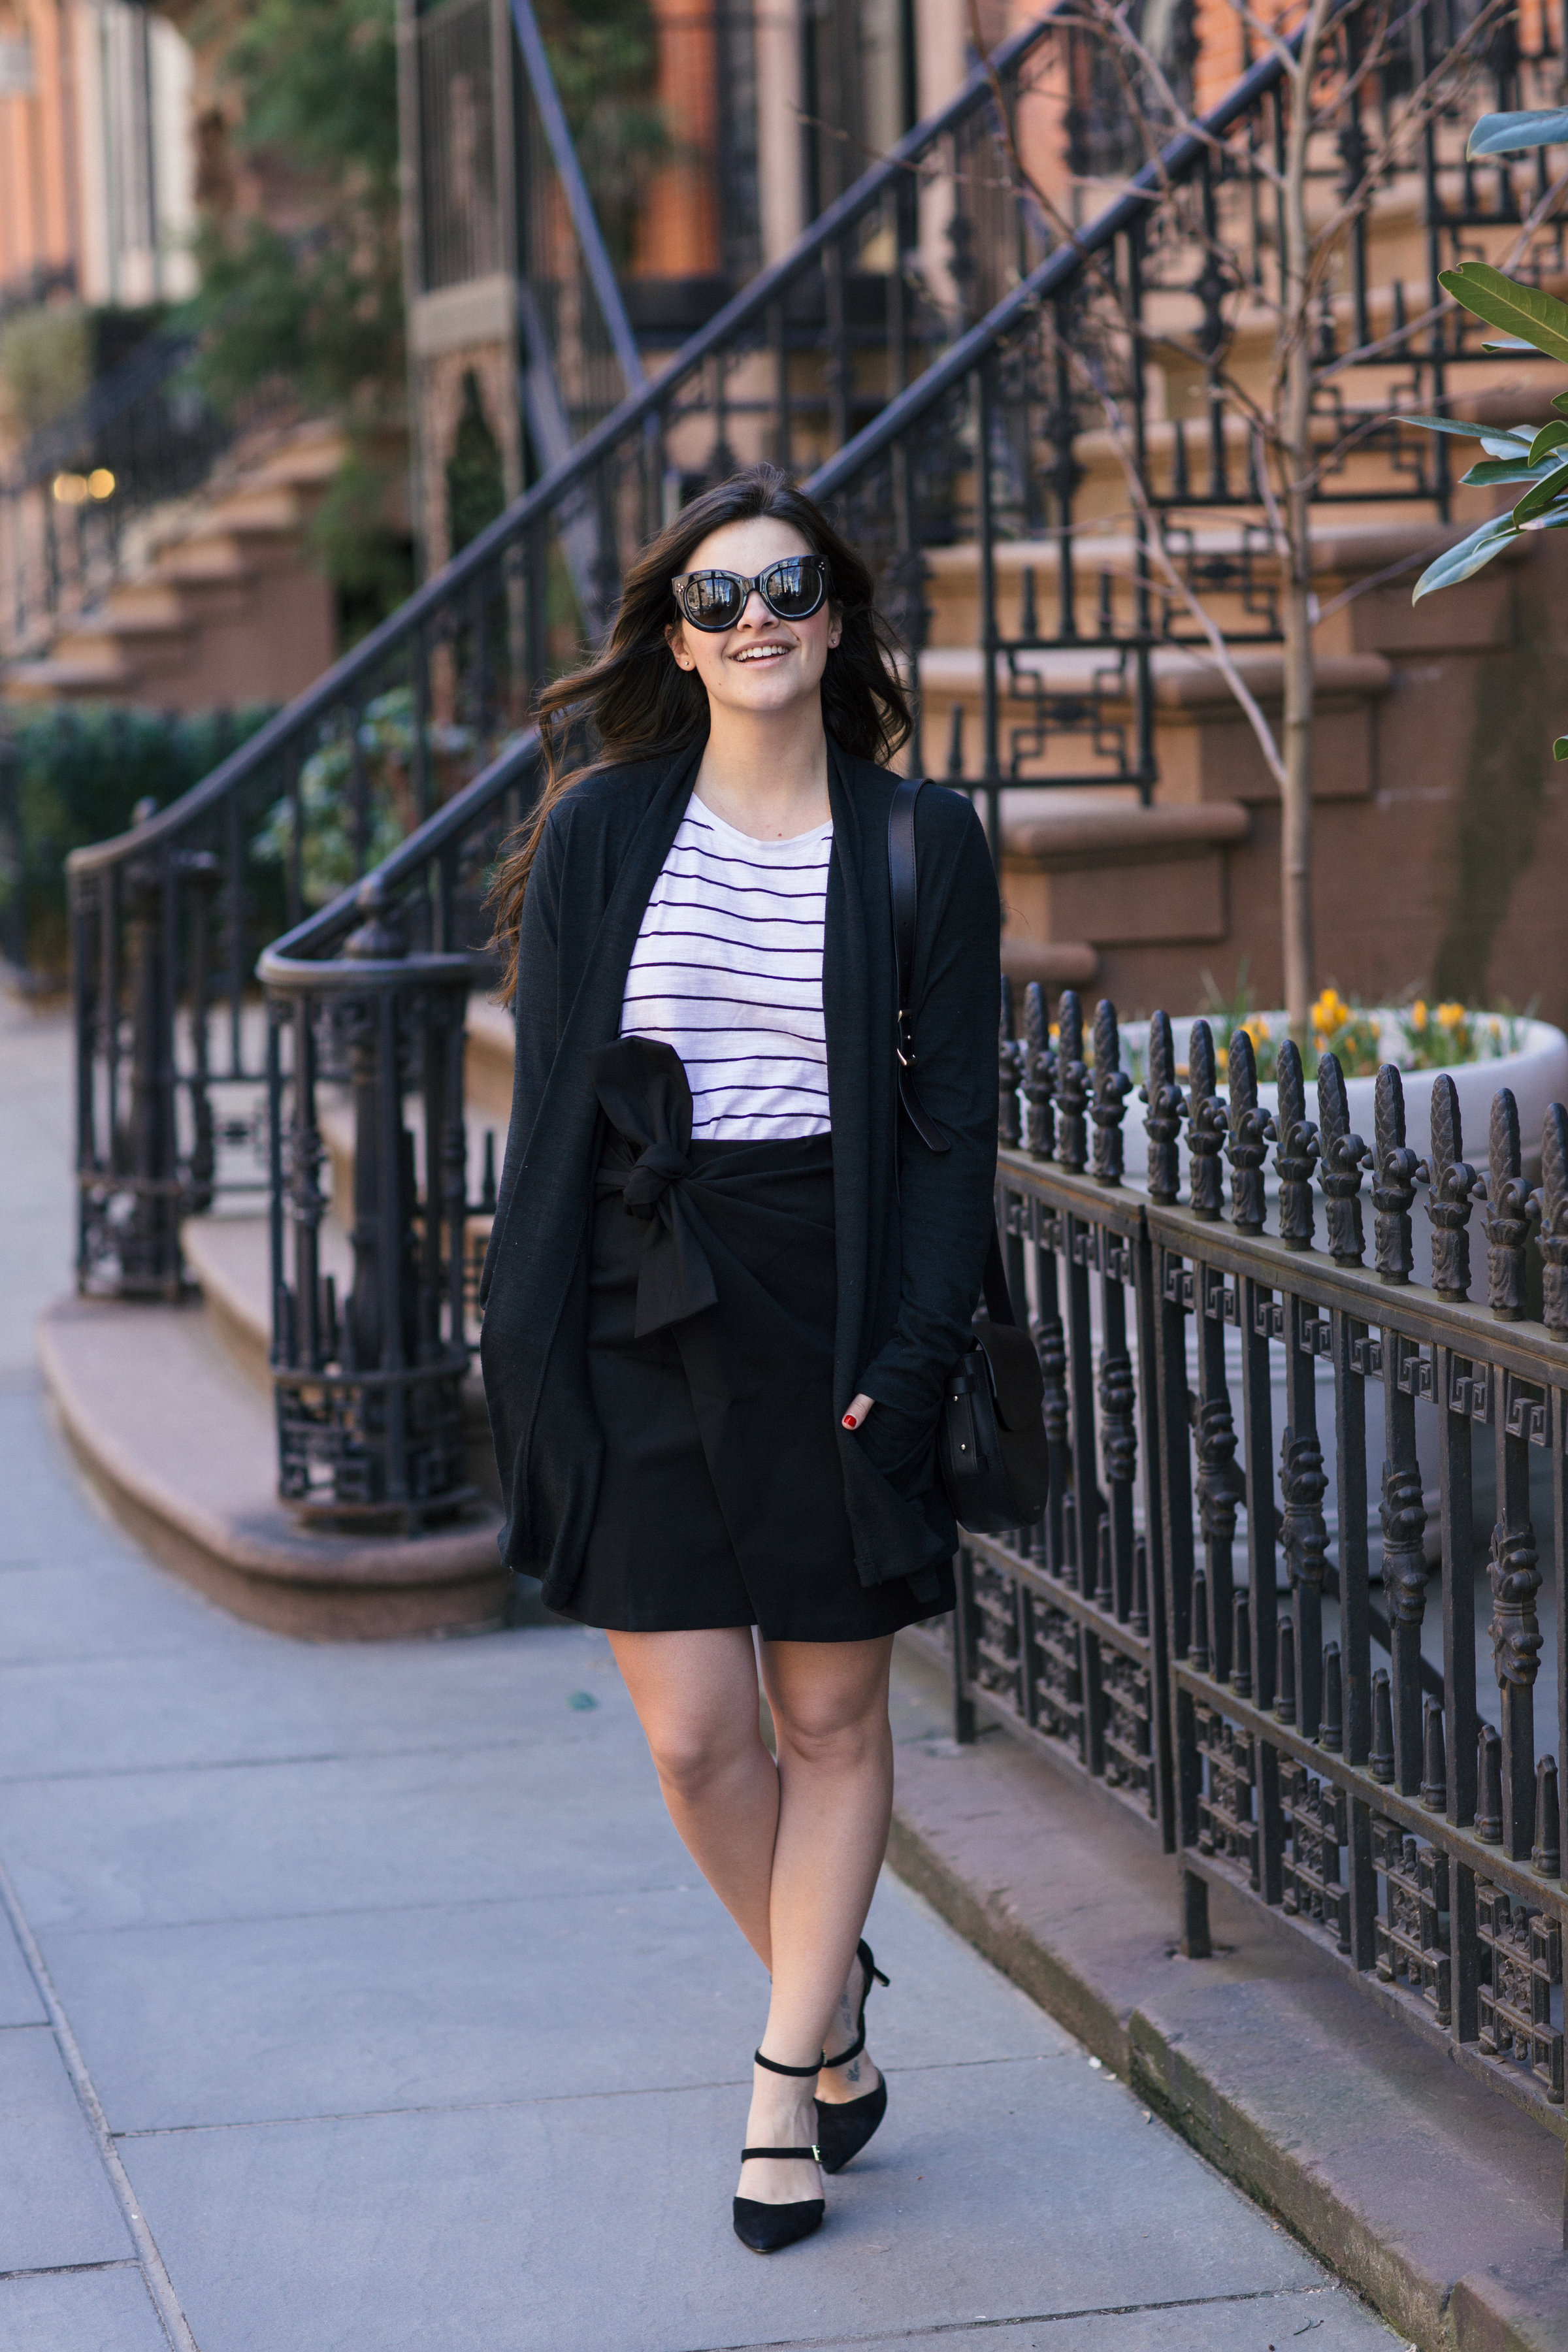 Corporate Work Outfit Ideas